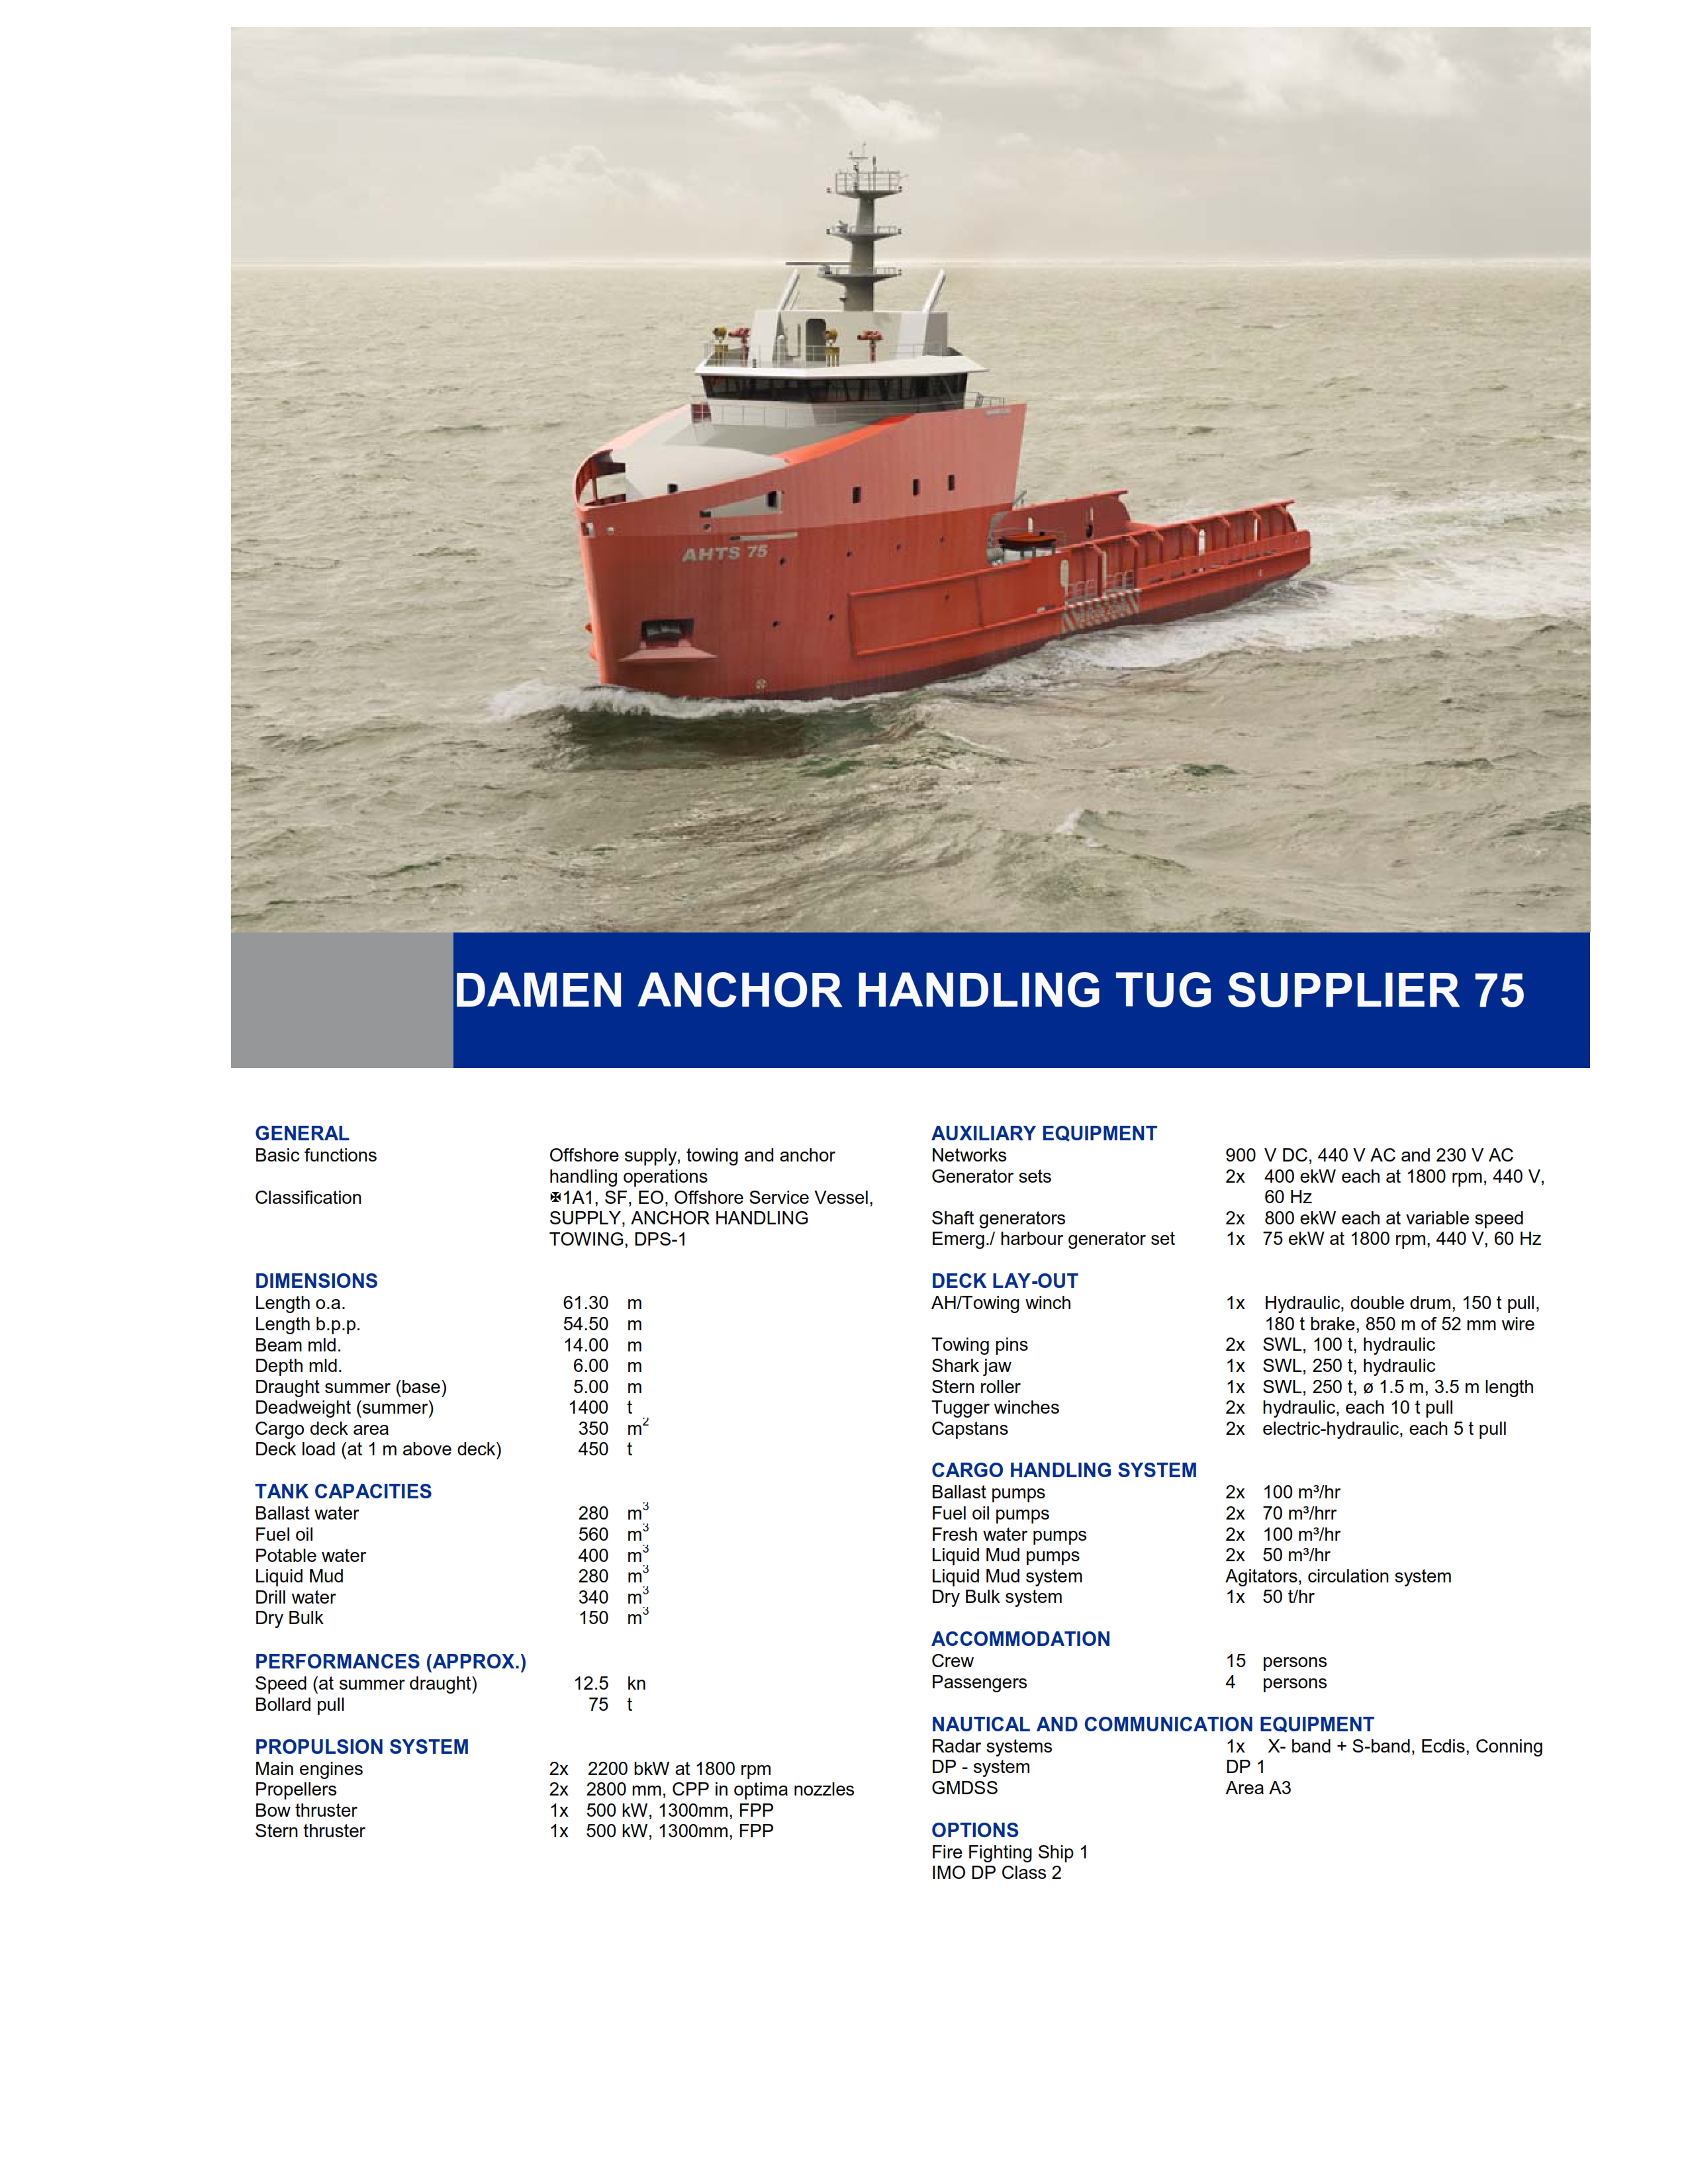 Product_Sheet_Anchor_Handling_Tug_Supplier_75_001.png